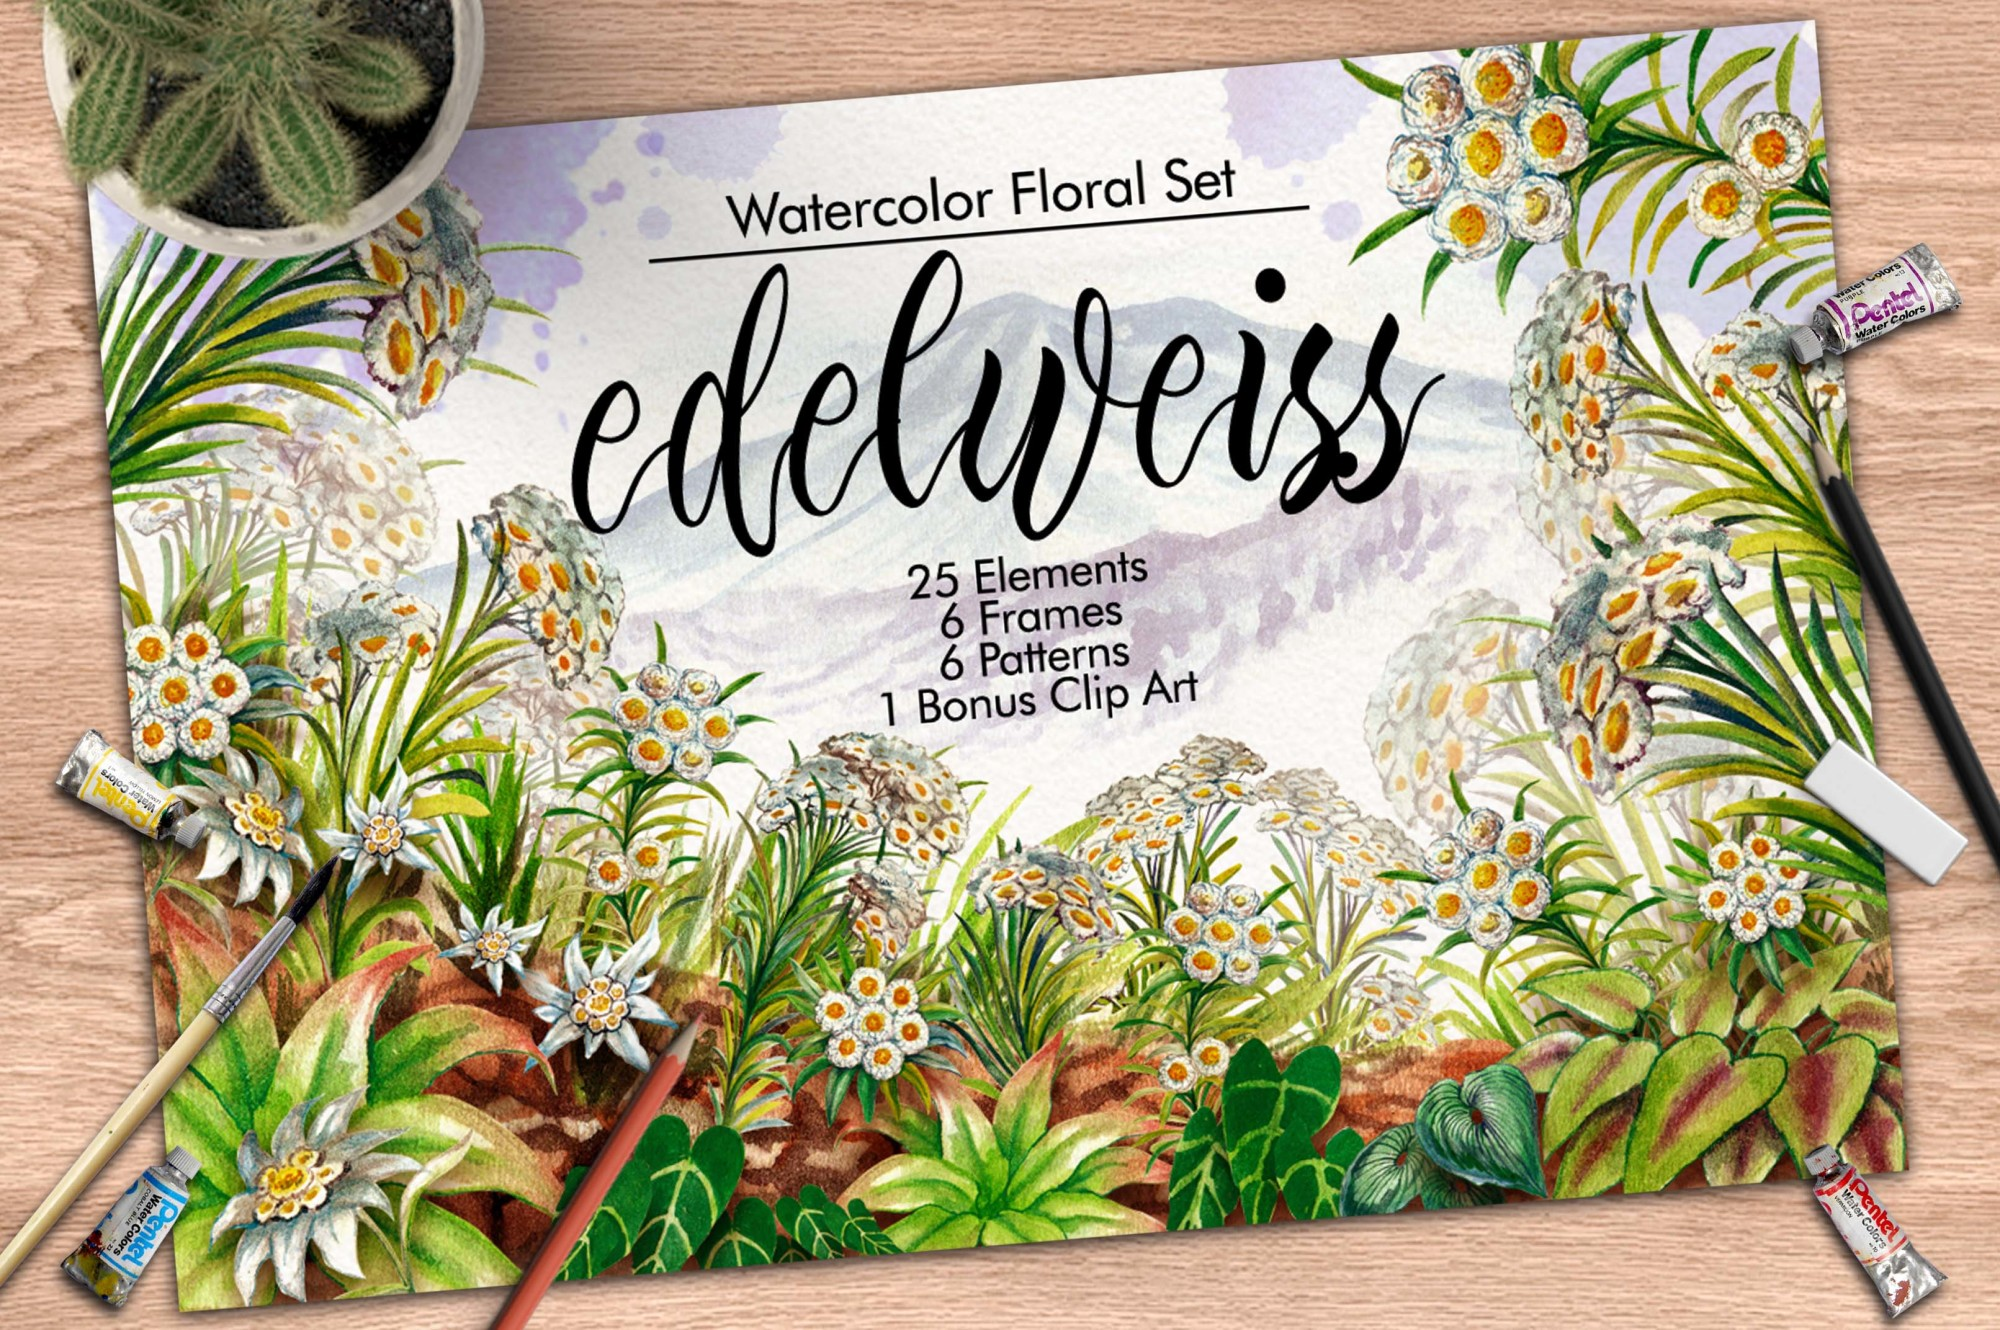 Watercolor Edelweis example image 1